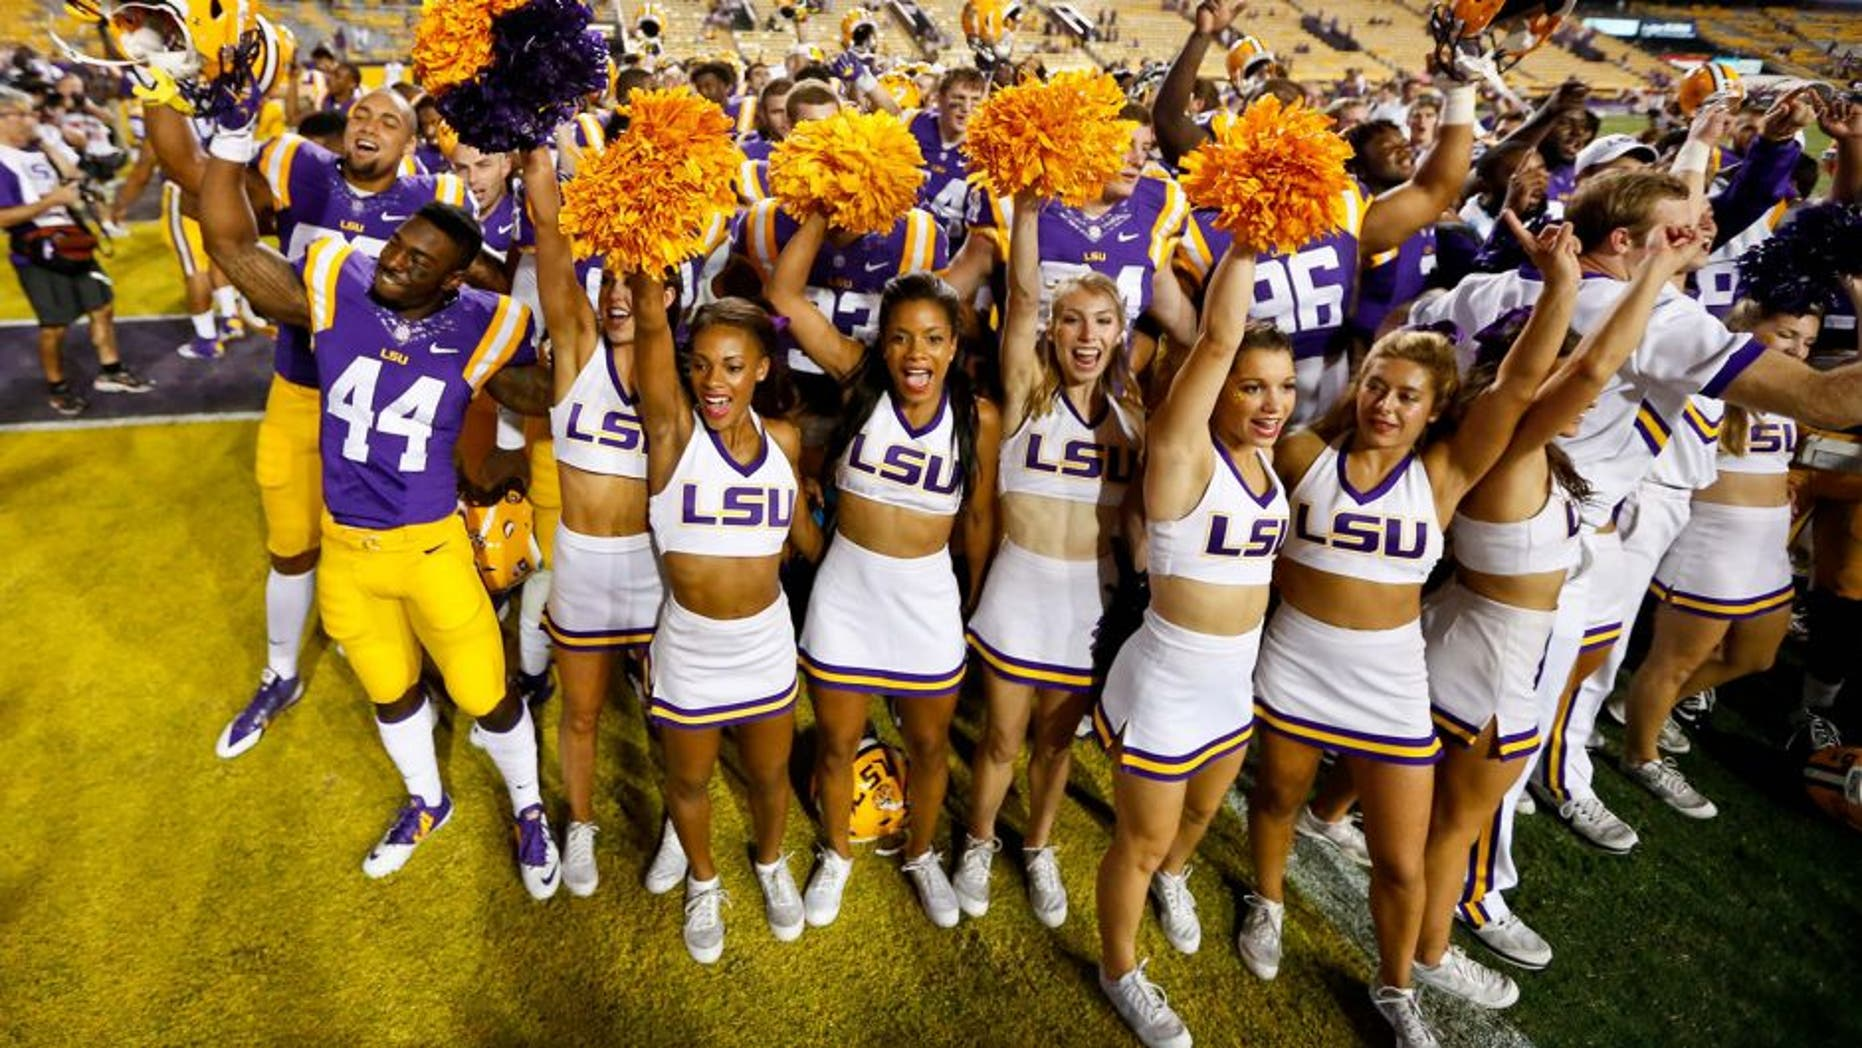 Sep 27, 2014; Baton Rouge, LA, USA; LSU Tigers players and cheerleaders celebrate following a win against the New Mexico State Aggies in a game at Tiger Stadium. LSU defeated New Mexico State 63-7. Mandatory Credit: Derick E. Hingle-USA TODAY Sports